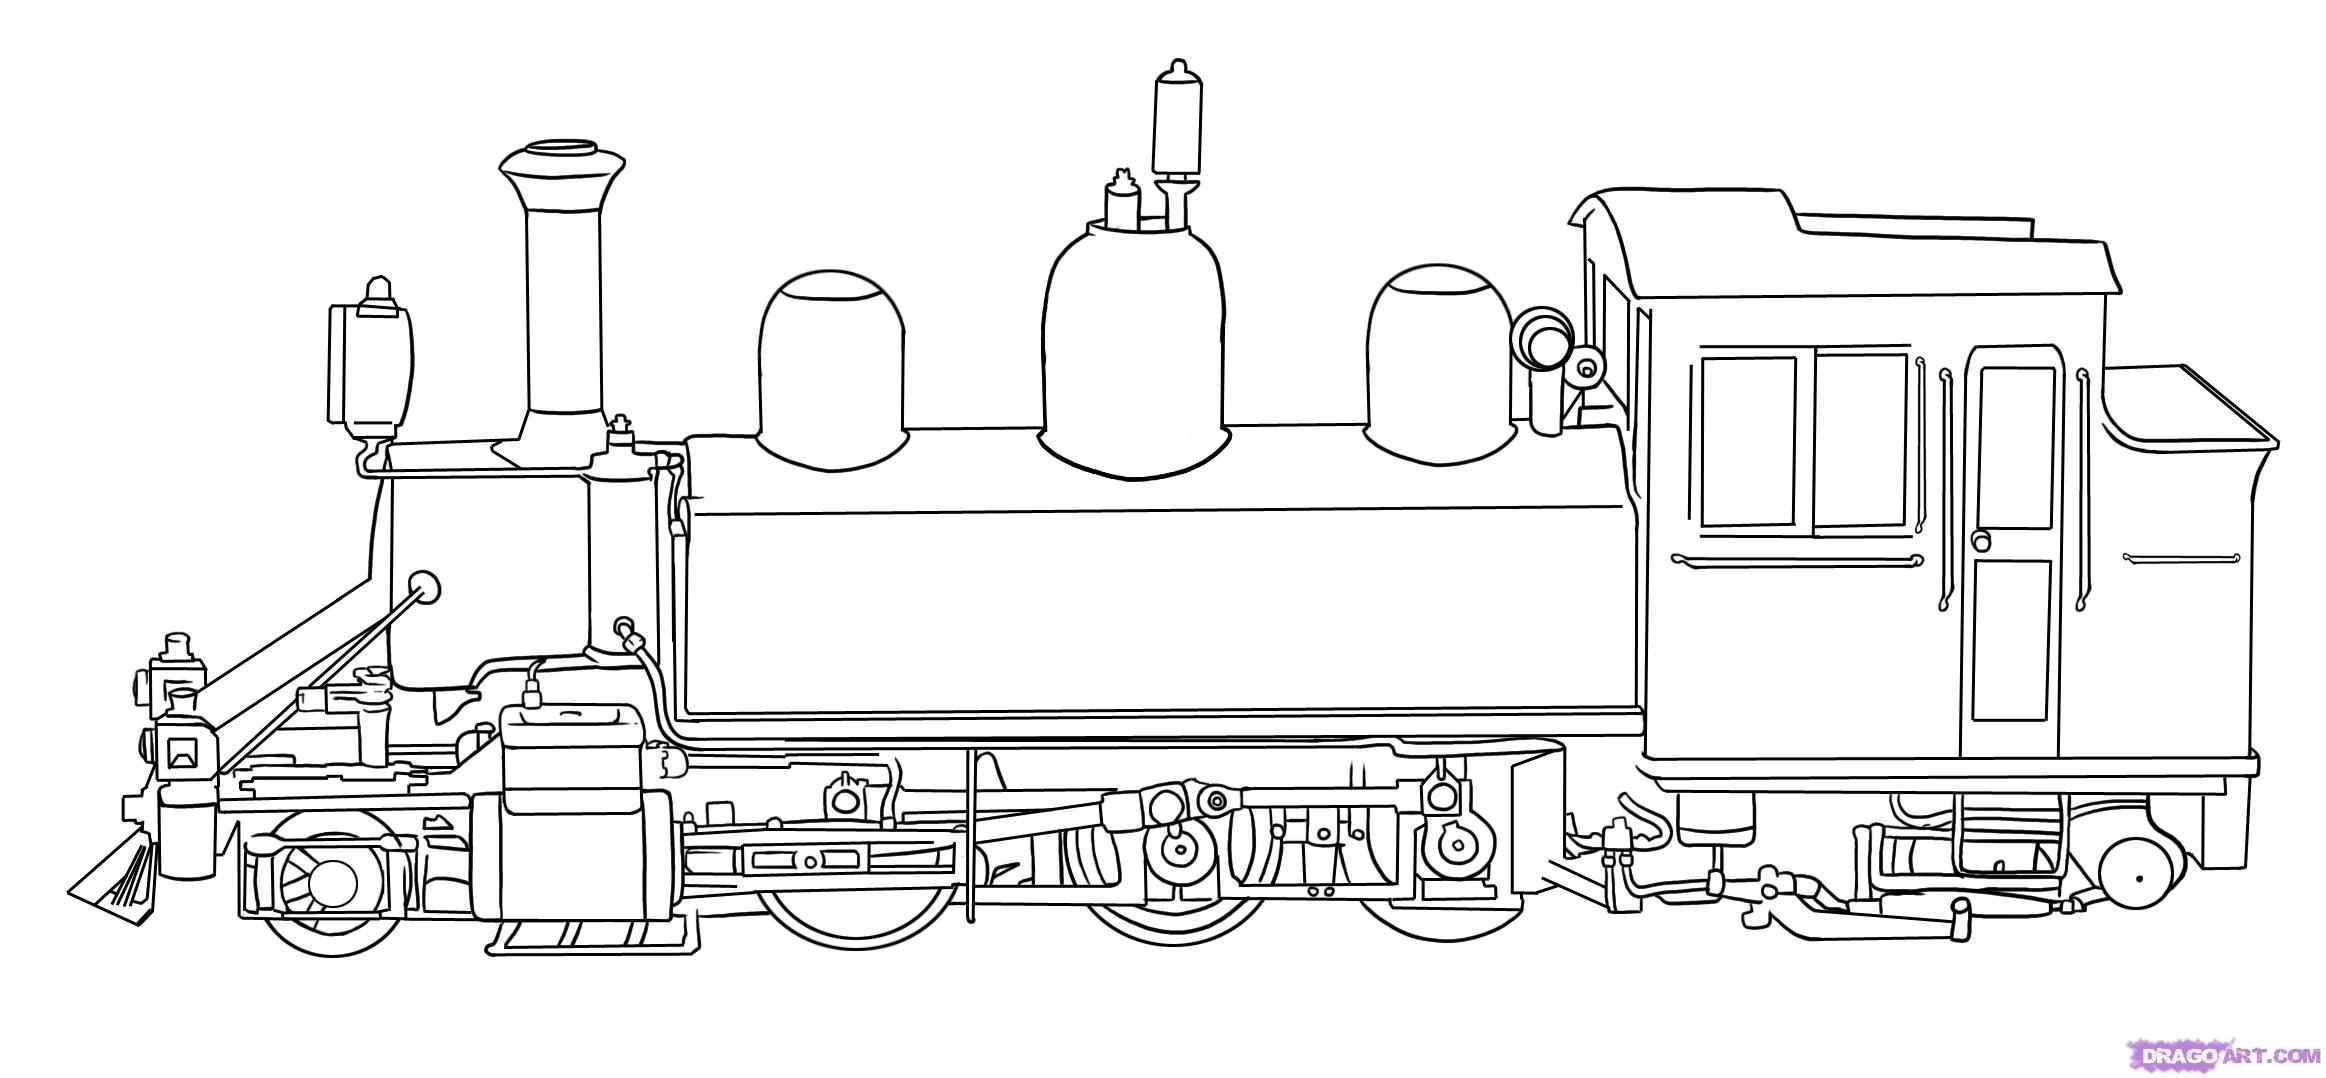 Coloring pages trains - Toy Train Blueprints Google Search Train Coloring Page